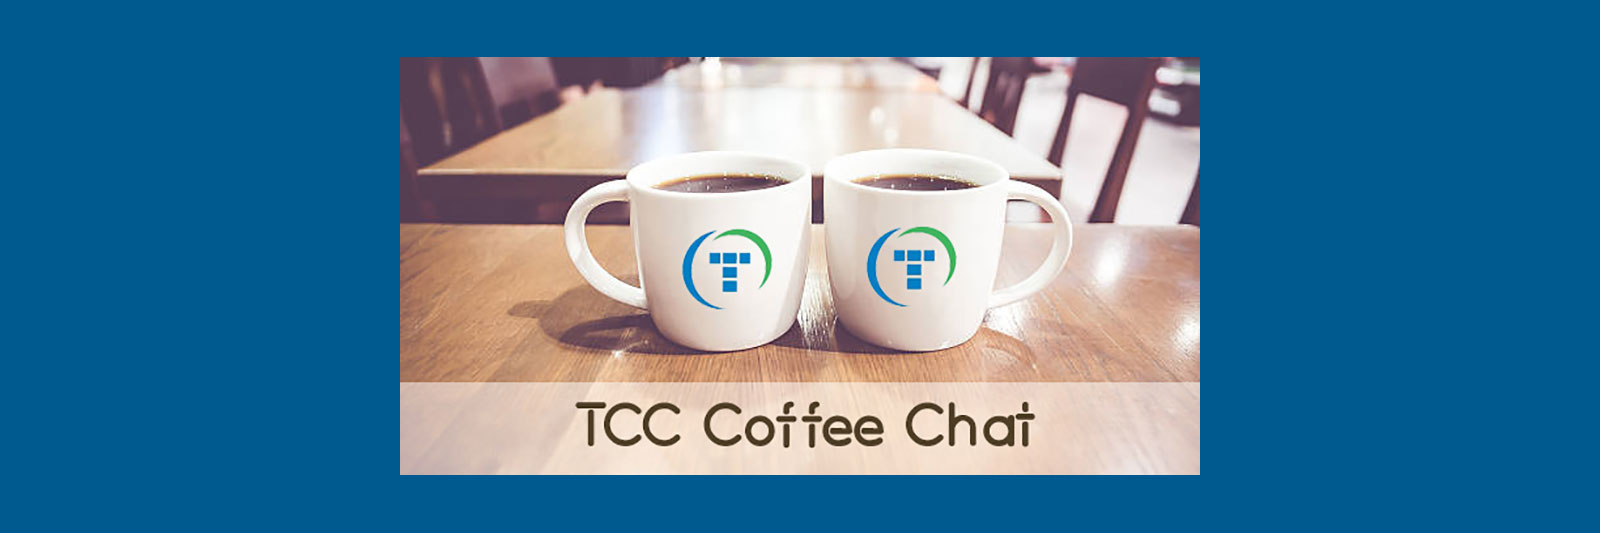 TCC-Coffee-Chat1.jpg